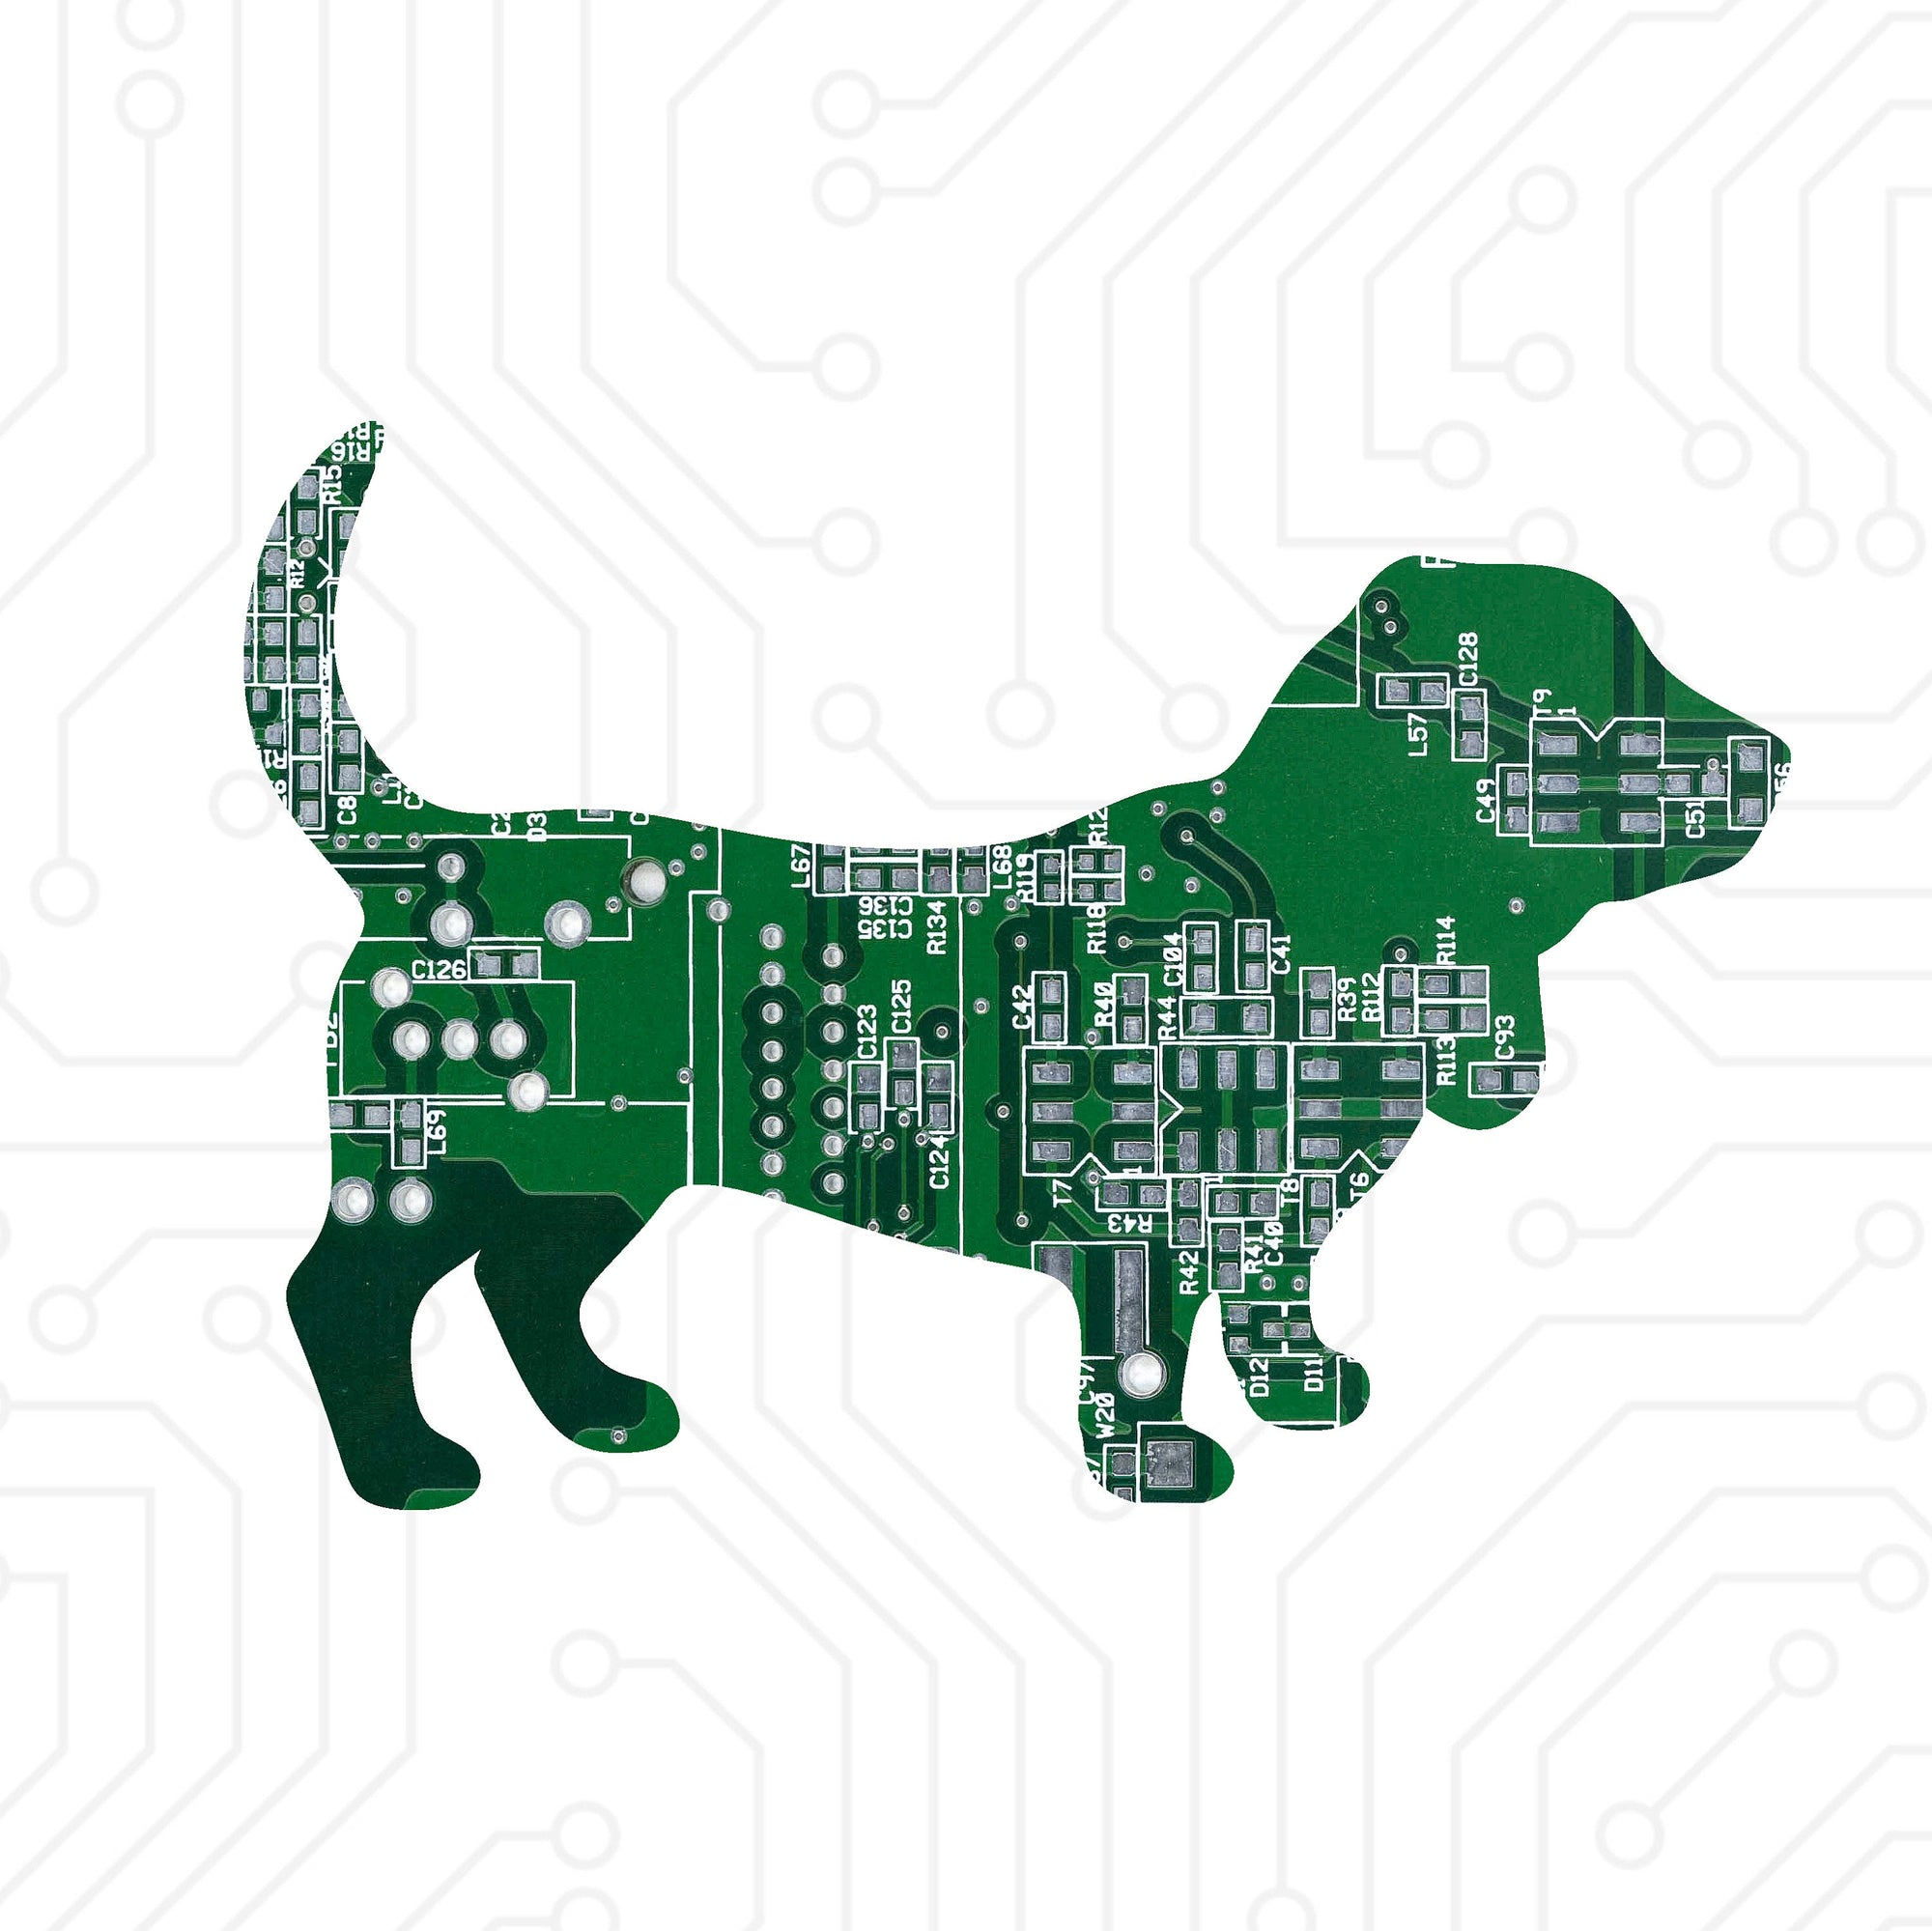 Circuit Board Basset Hound - TechWears Ltd